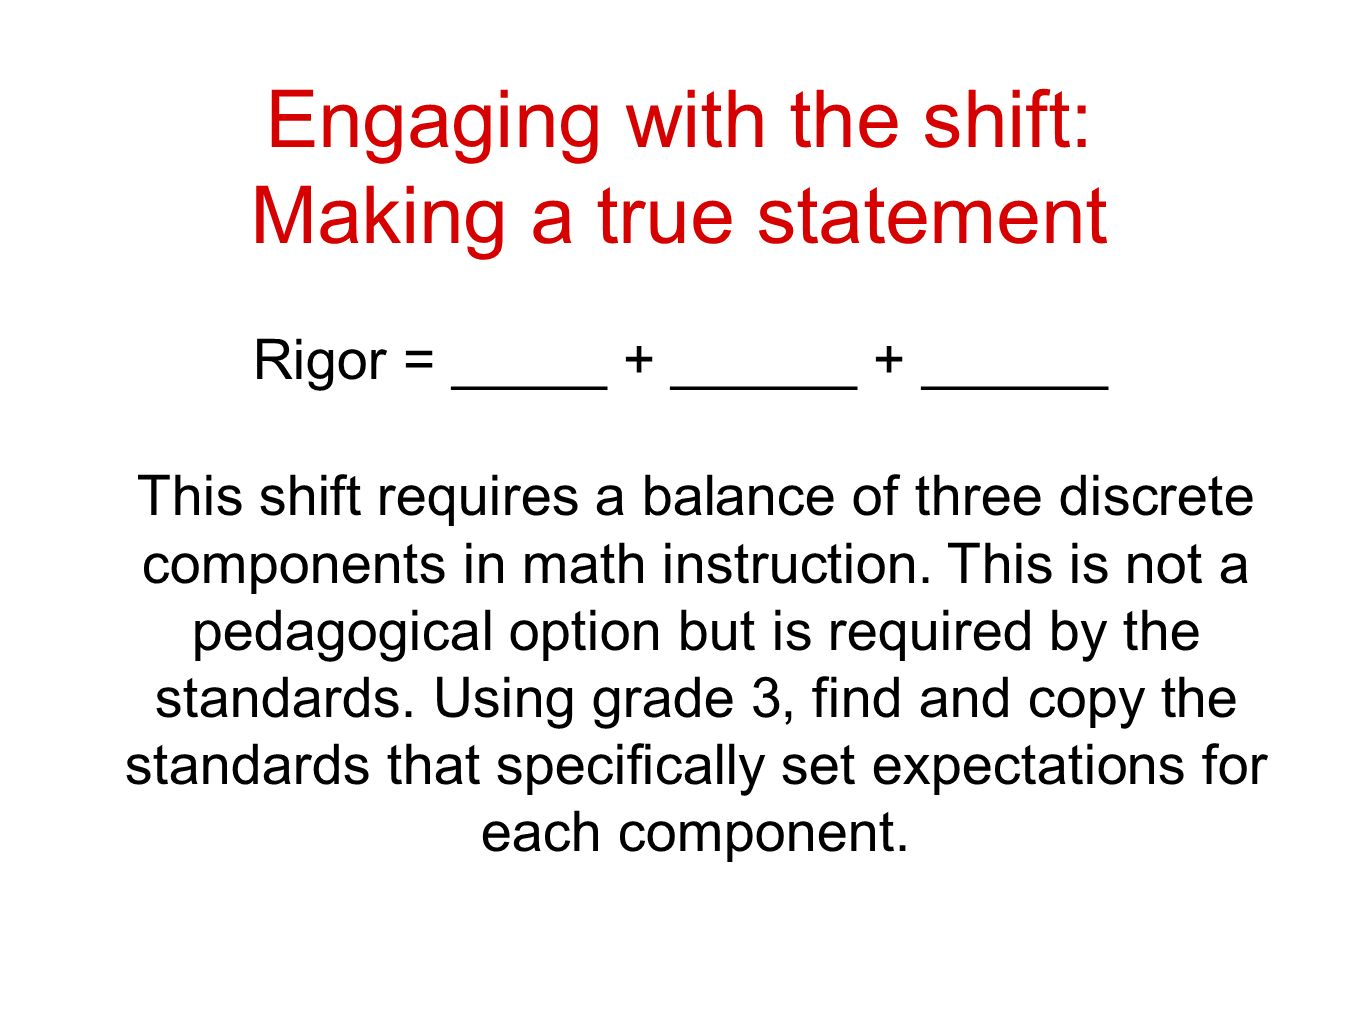 Engaging with the shift: Making a true statement